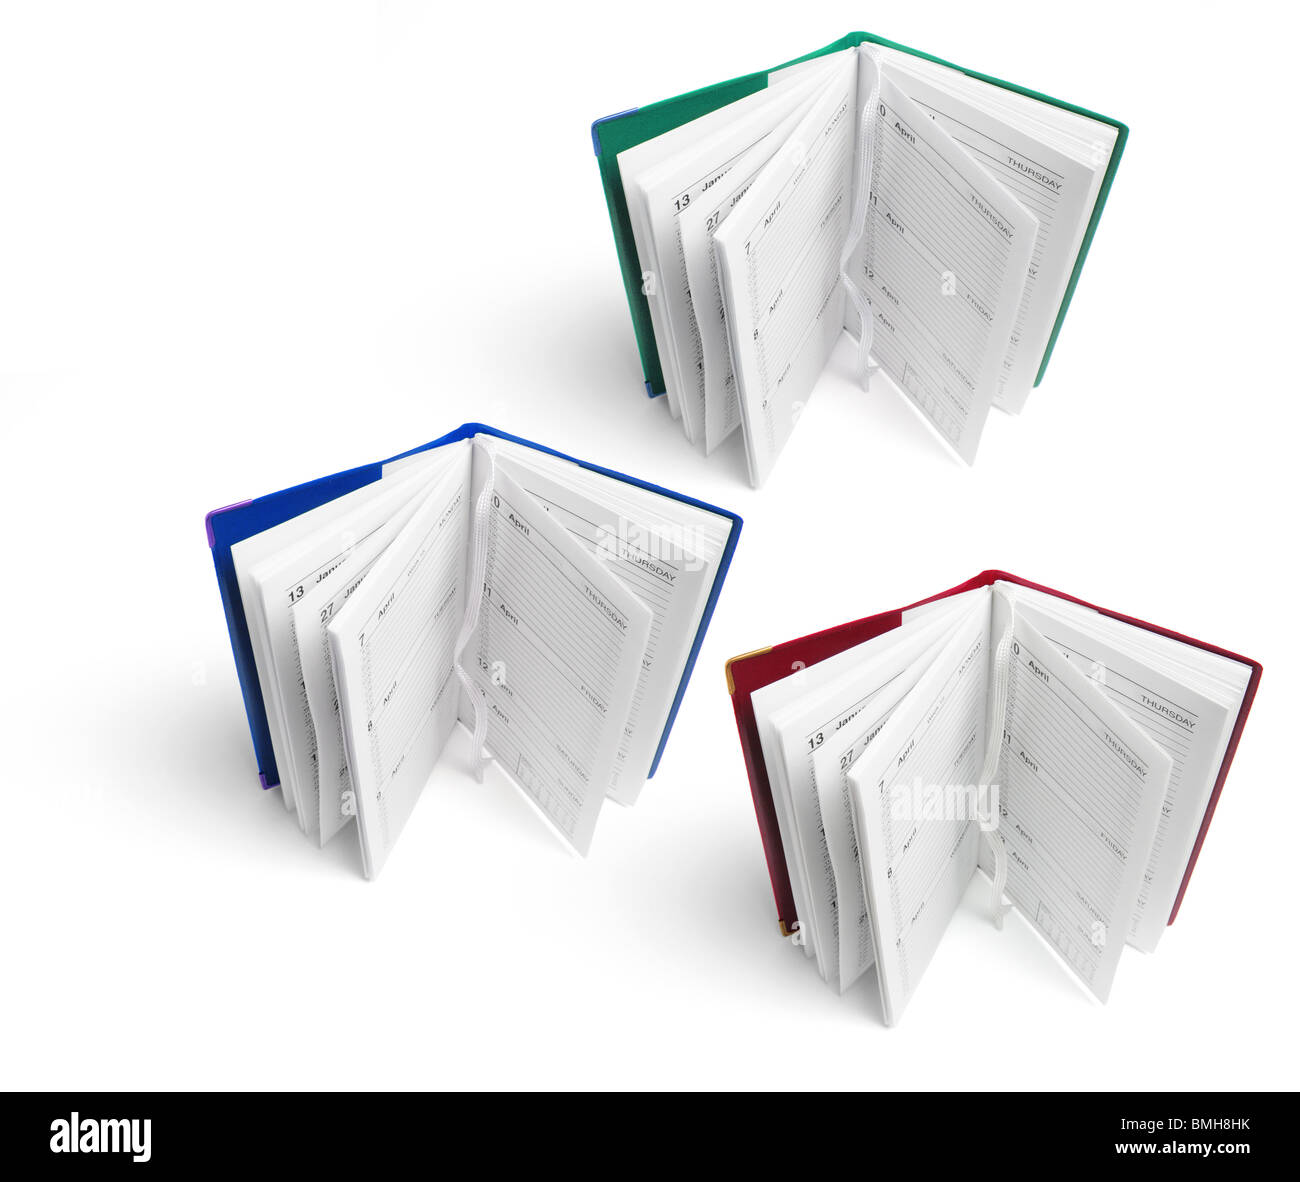 Pocket Organizers - Stock Image